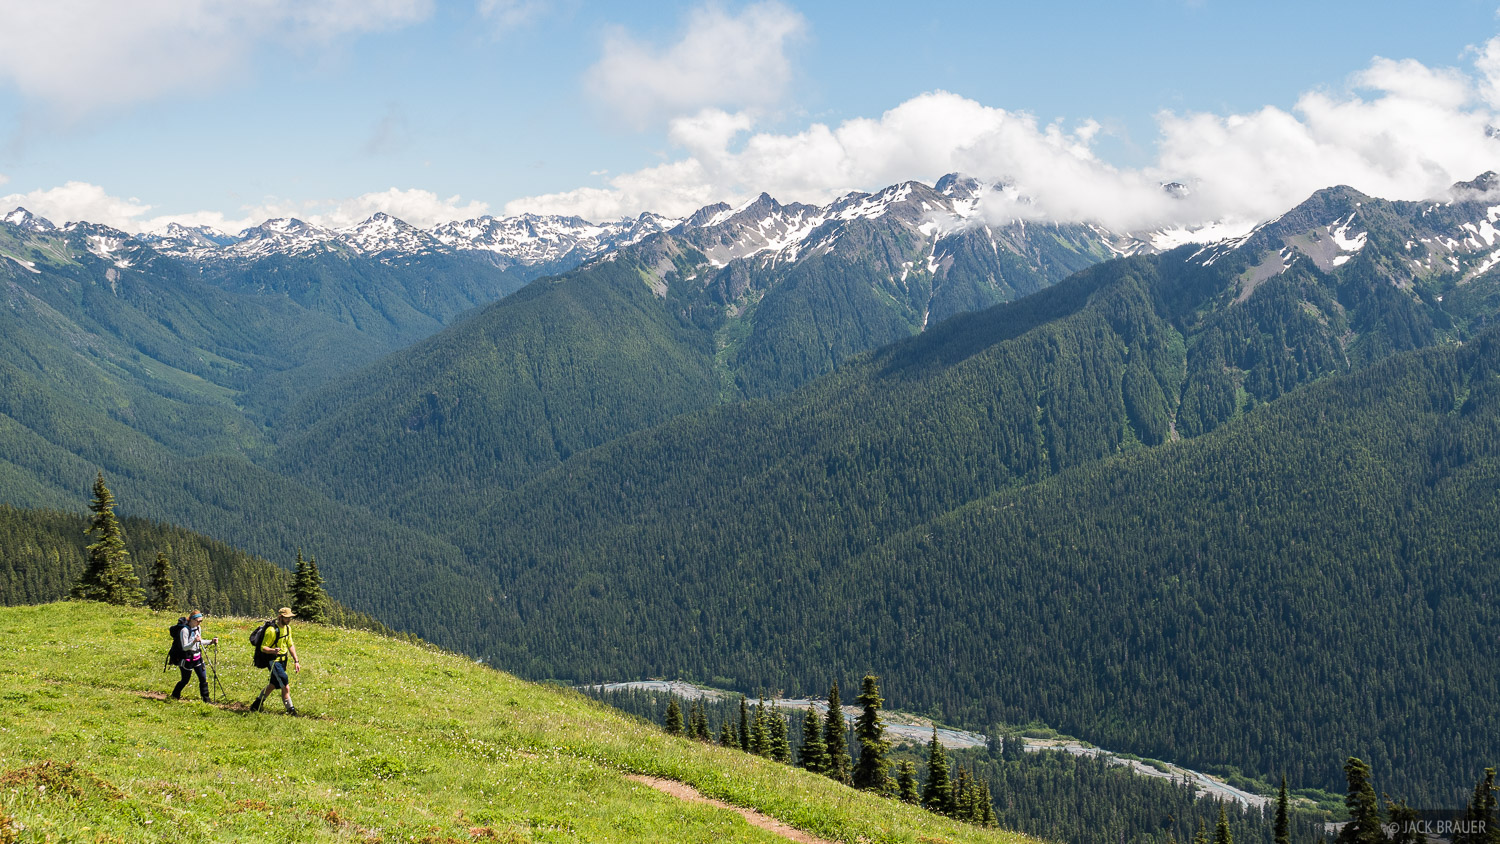 Hikers on the High Divide trail with the Hoh River valley below.